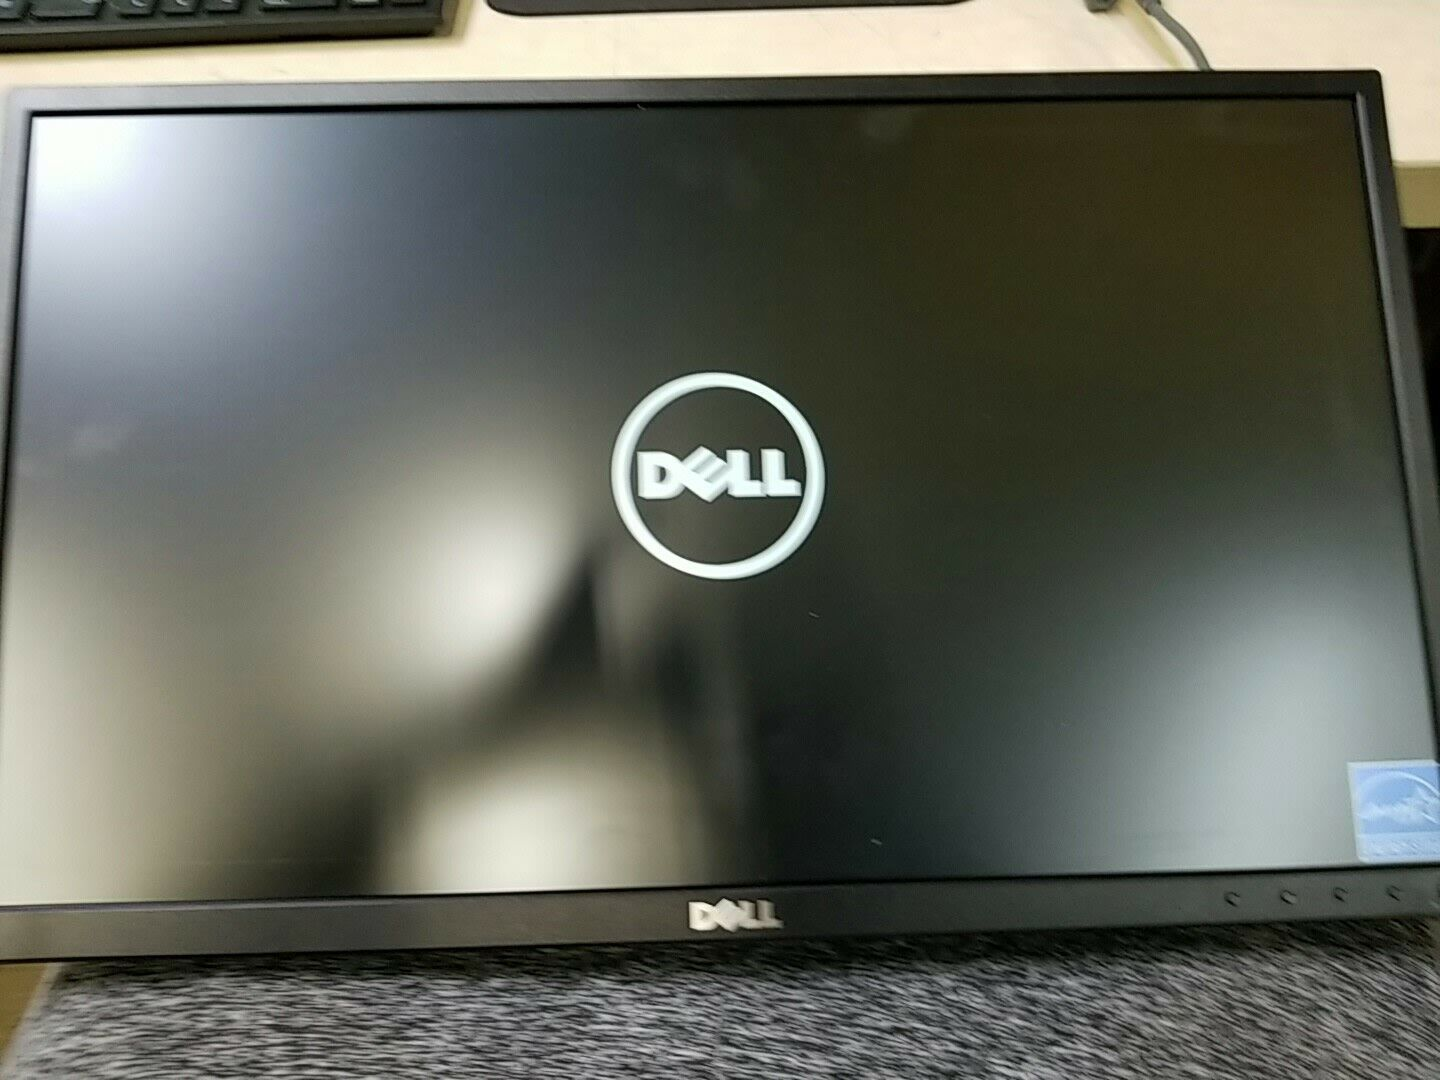 Primary image for Dell P2217H 21.5 in. 16:9 IPS LED Monitor